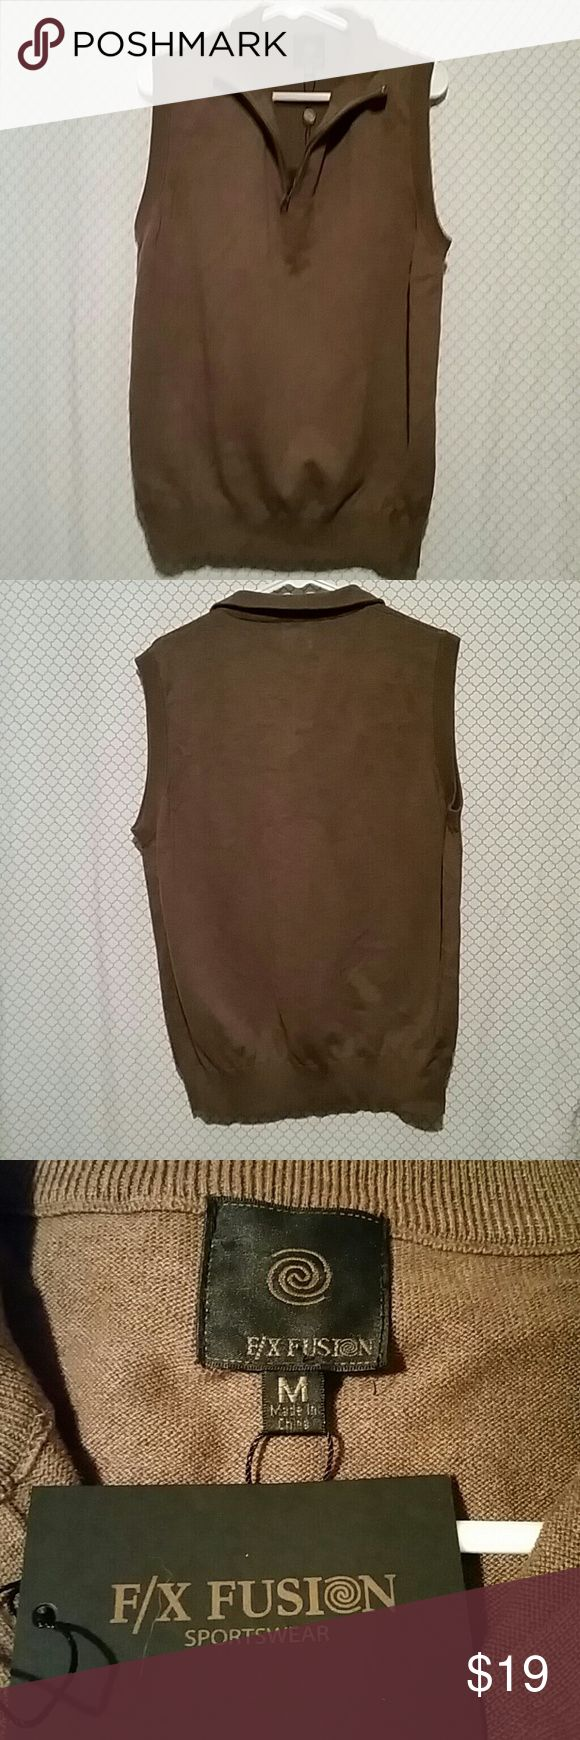 F / X Fusion vest size medium New with tags men's brown vest size medium 55% cotton 45% acrylic F/X FUSION  Sweaters